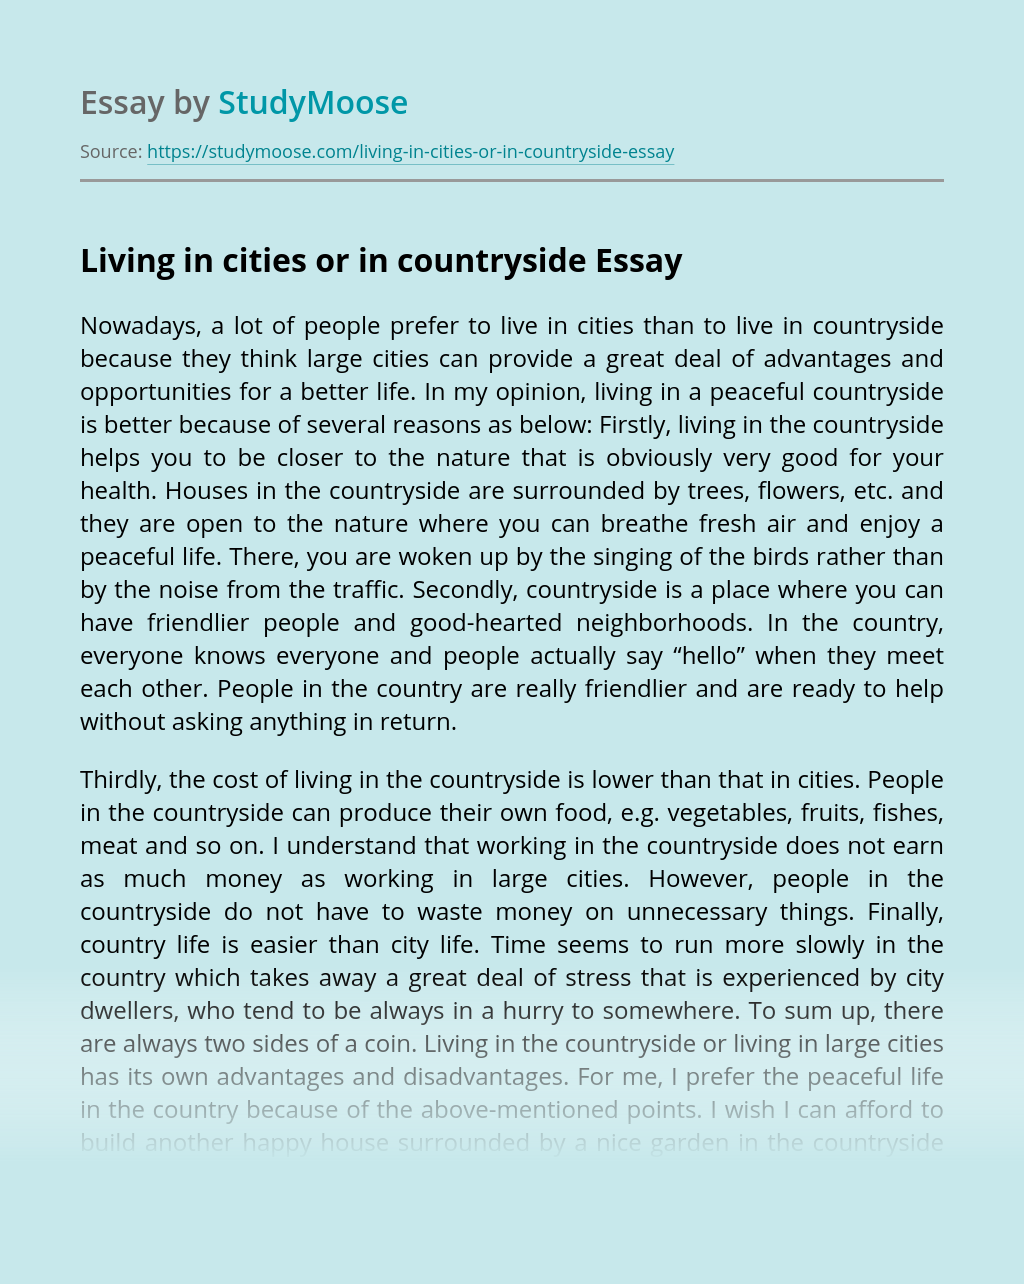 Living in cities or in countryside